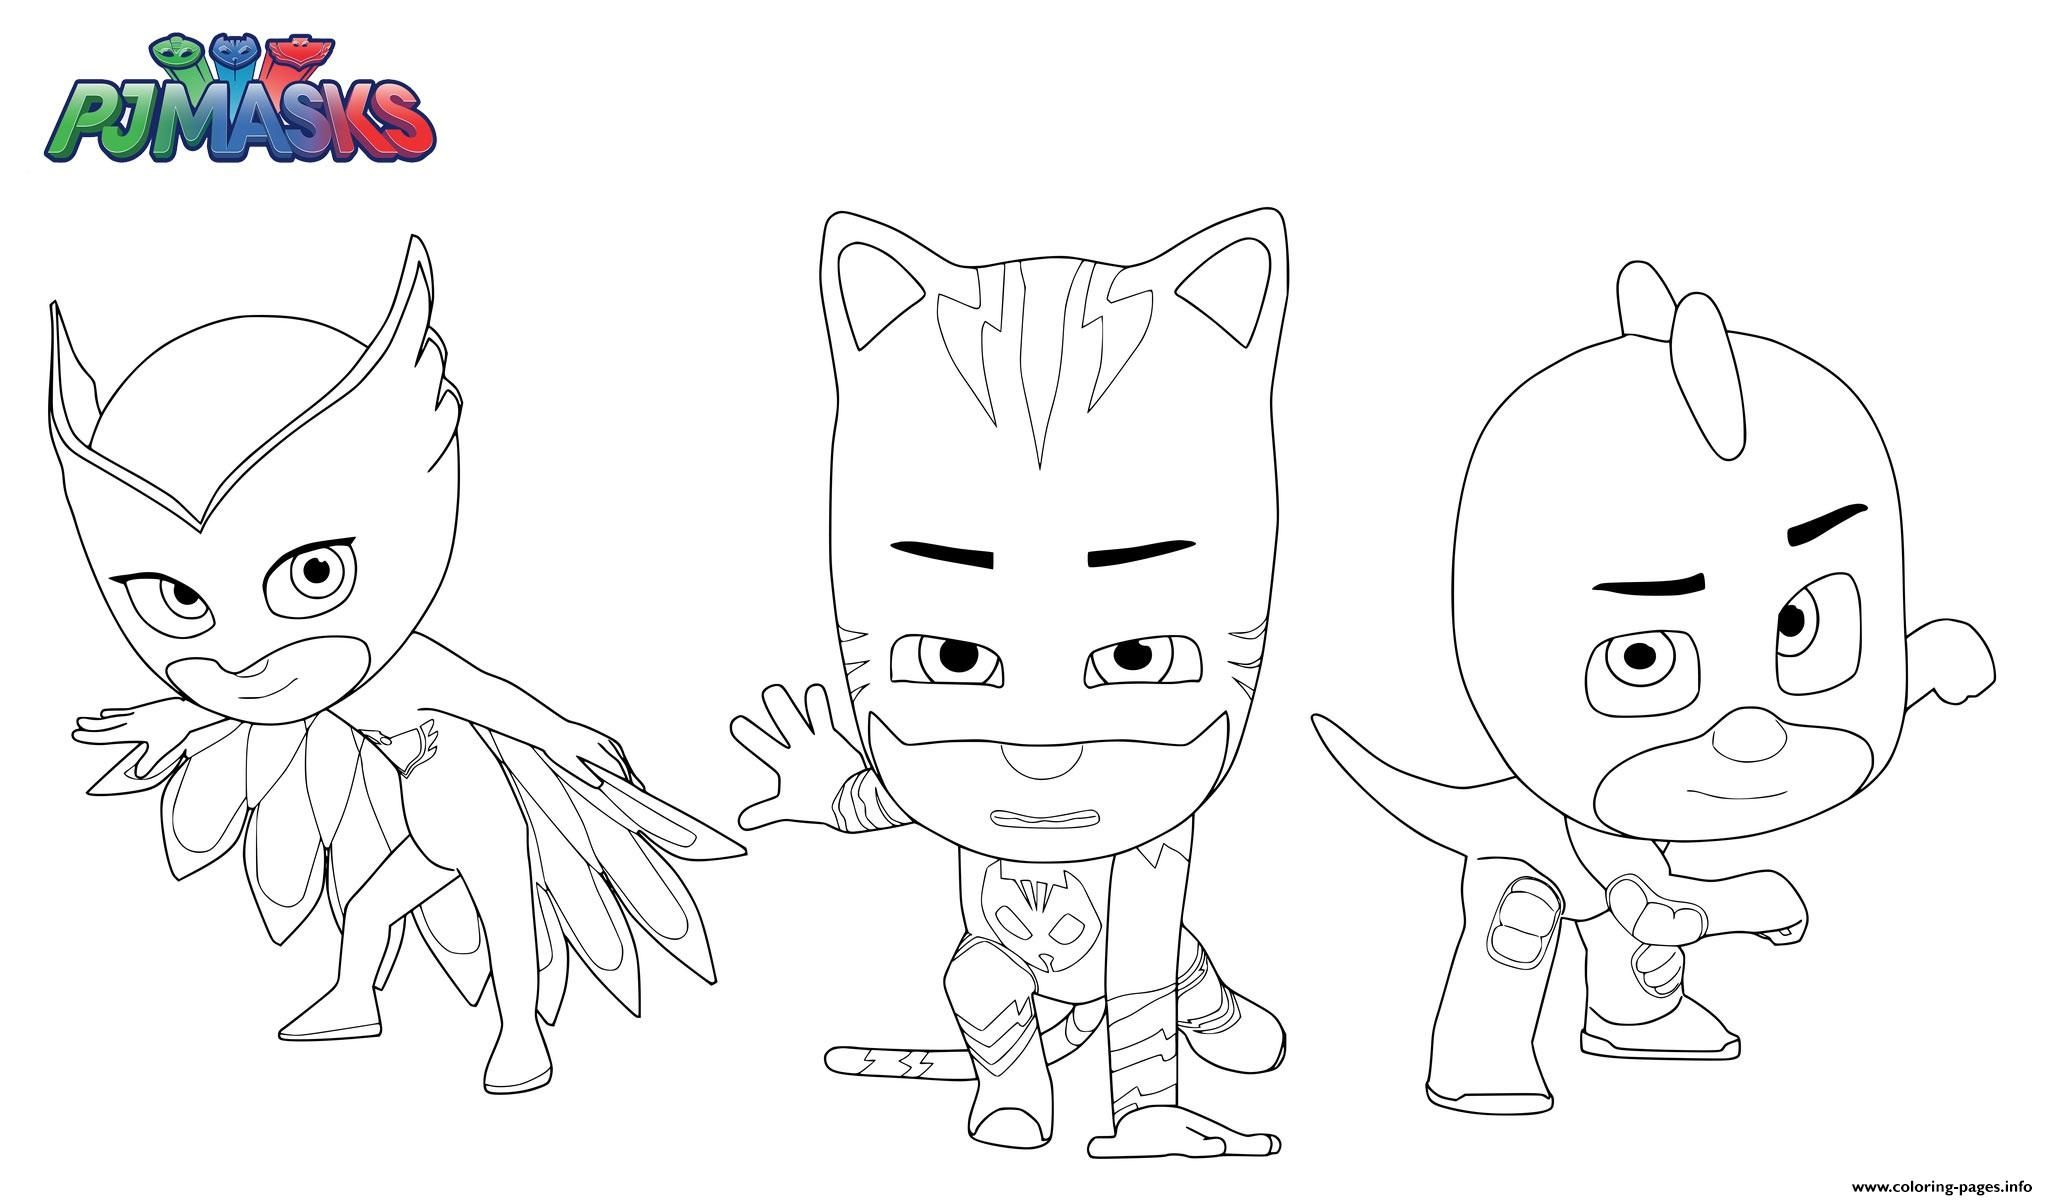 Print Pj Masks Superheroes Coloring Pages Pj Masks Coloring